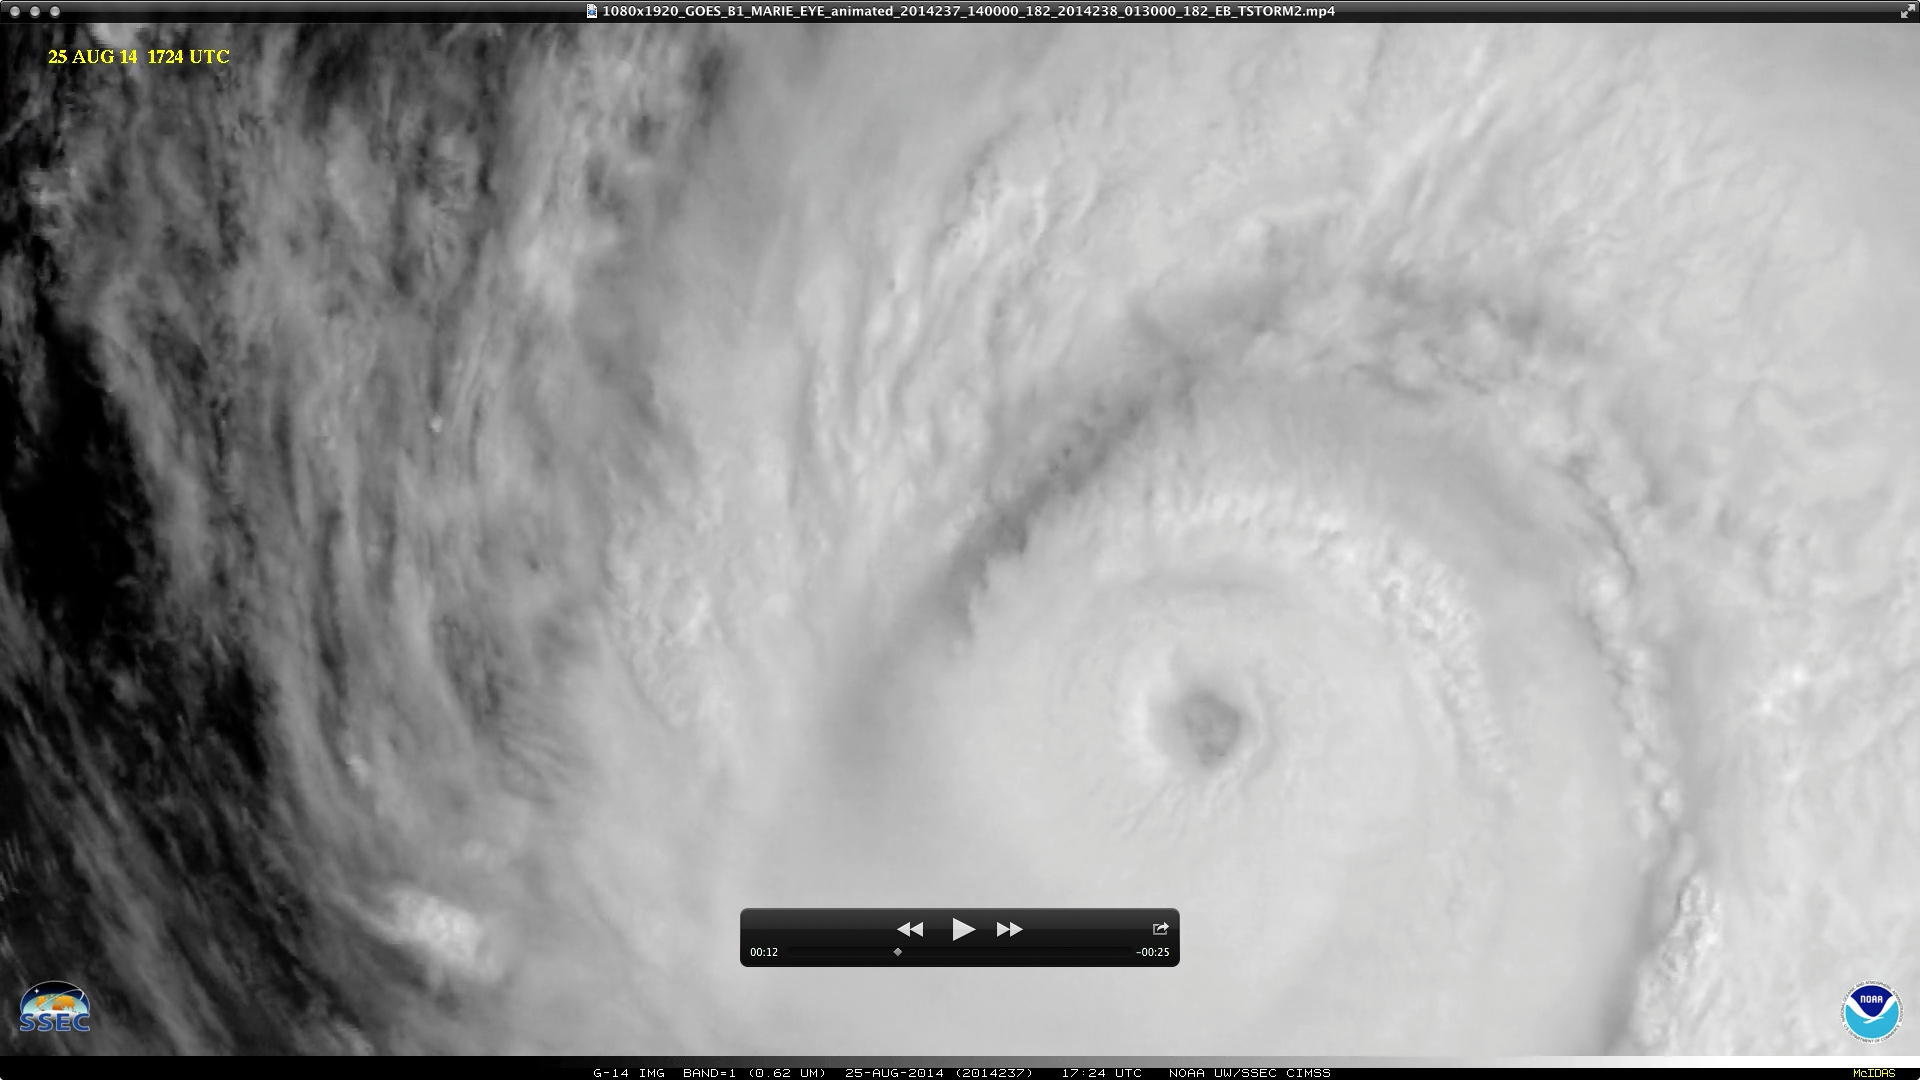 GOES-14 0.63 µm visible channel images (click to play YouTube video)